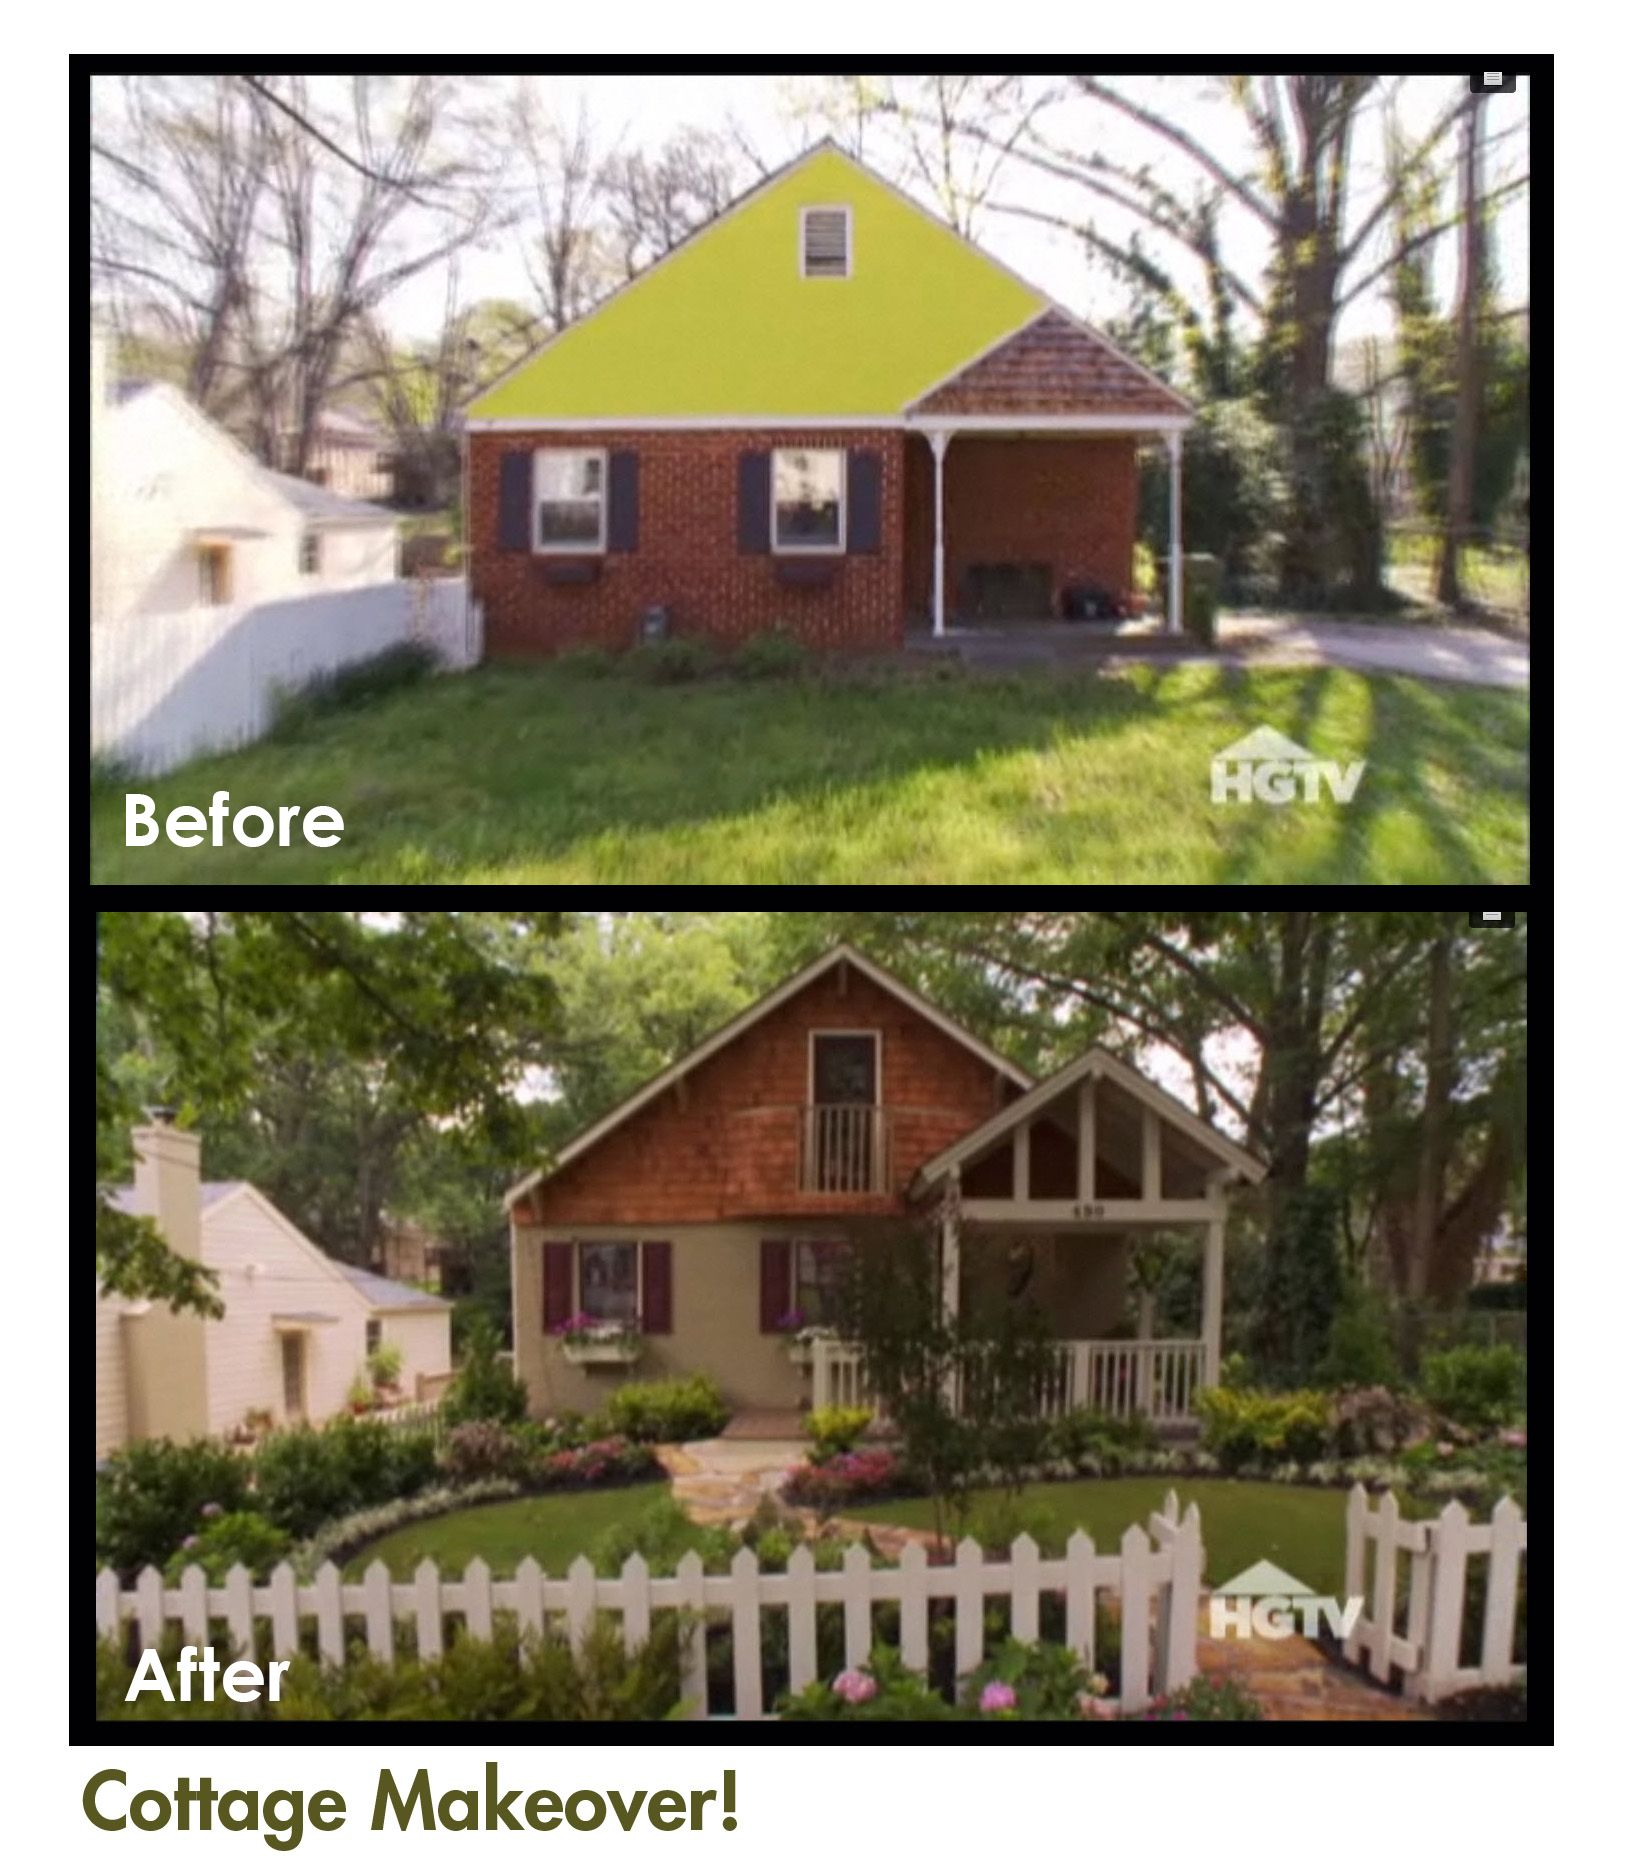 Hgtv Curb Appeal Amazing Cottage Make Over Small House Remodel Porch Remodel Ranch Remodel